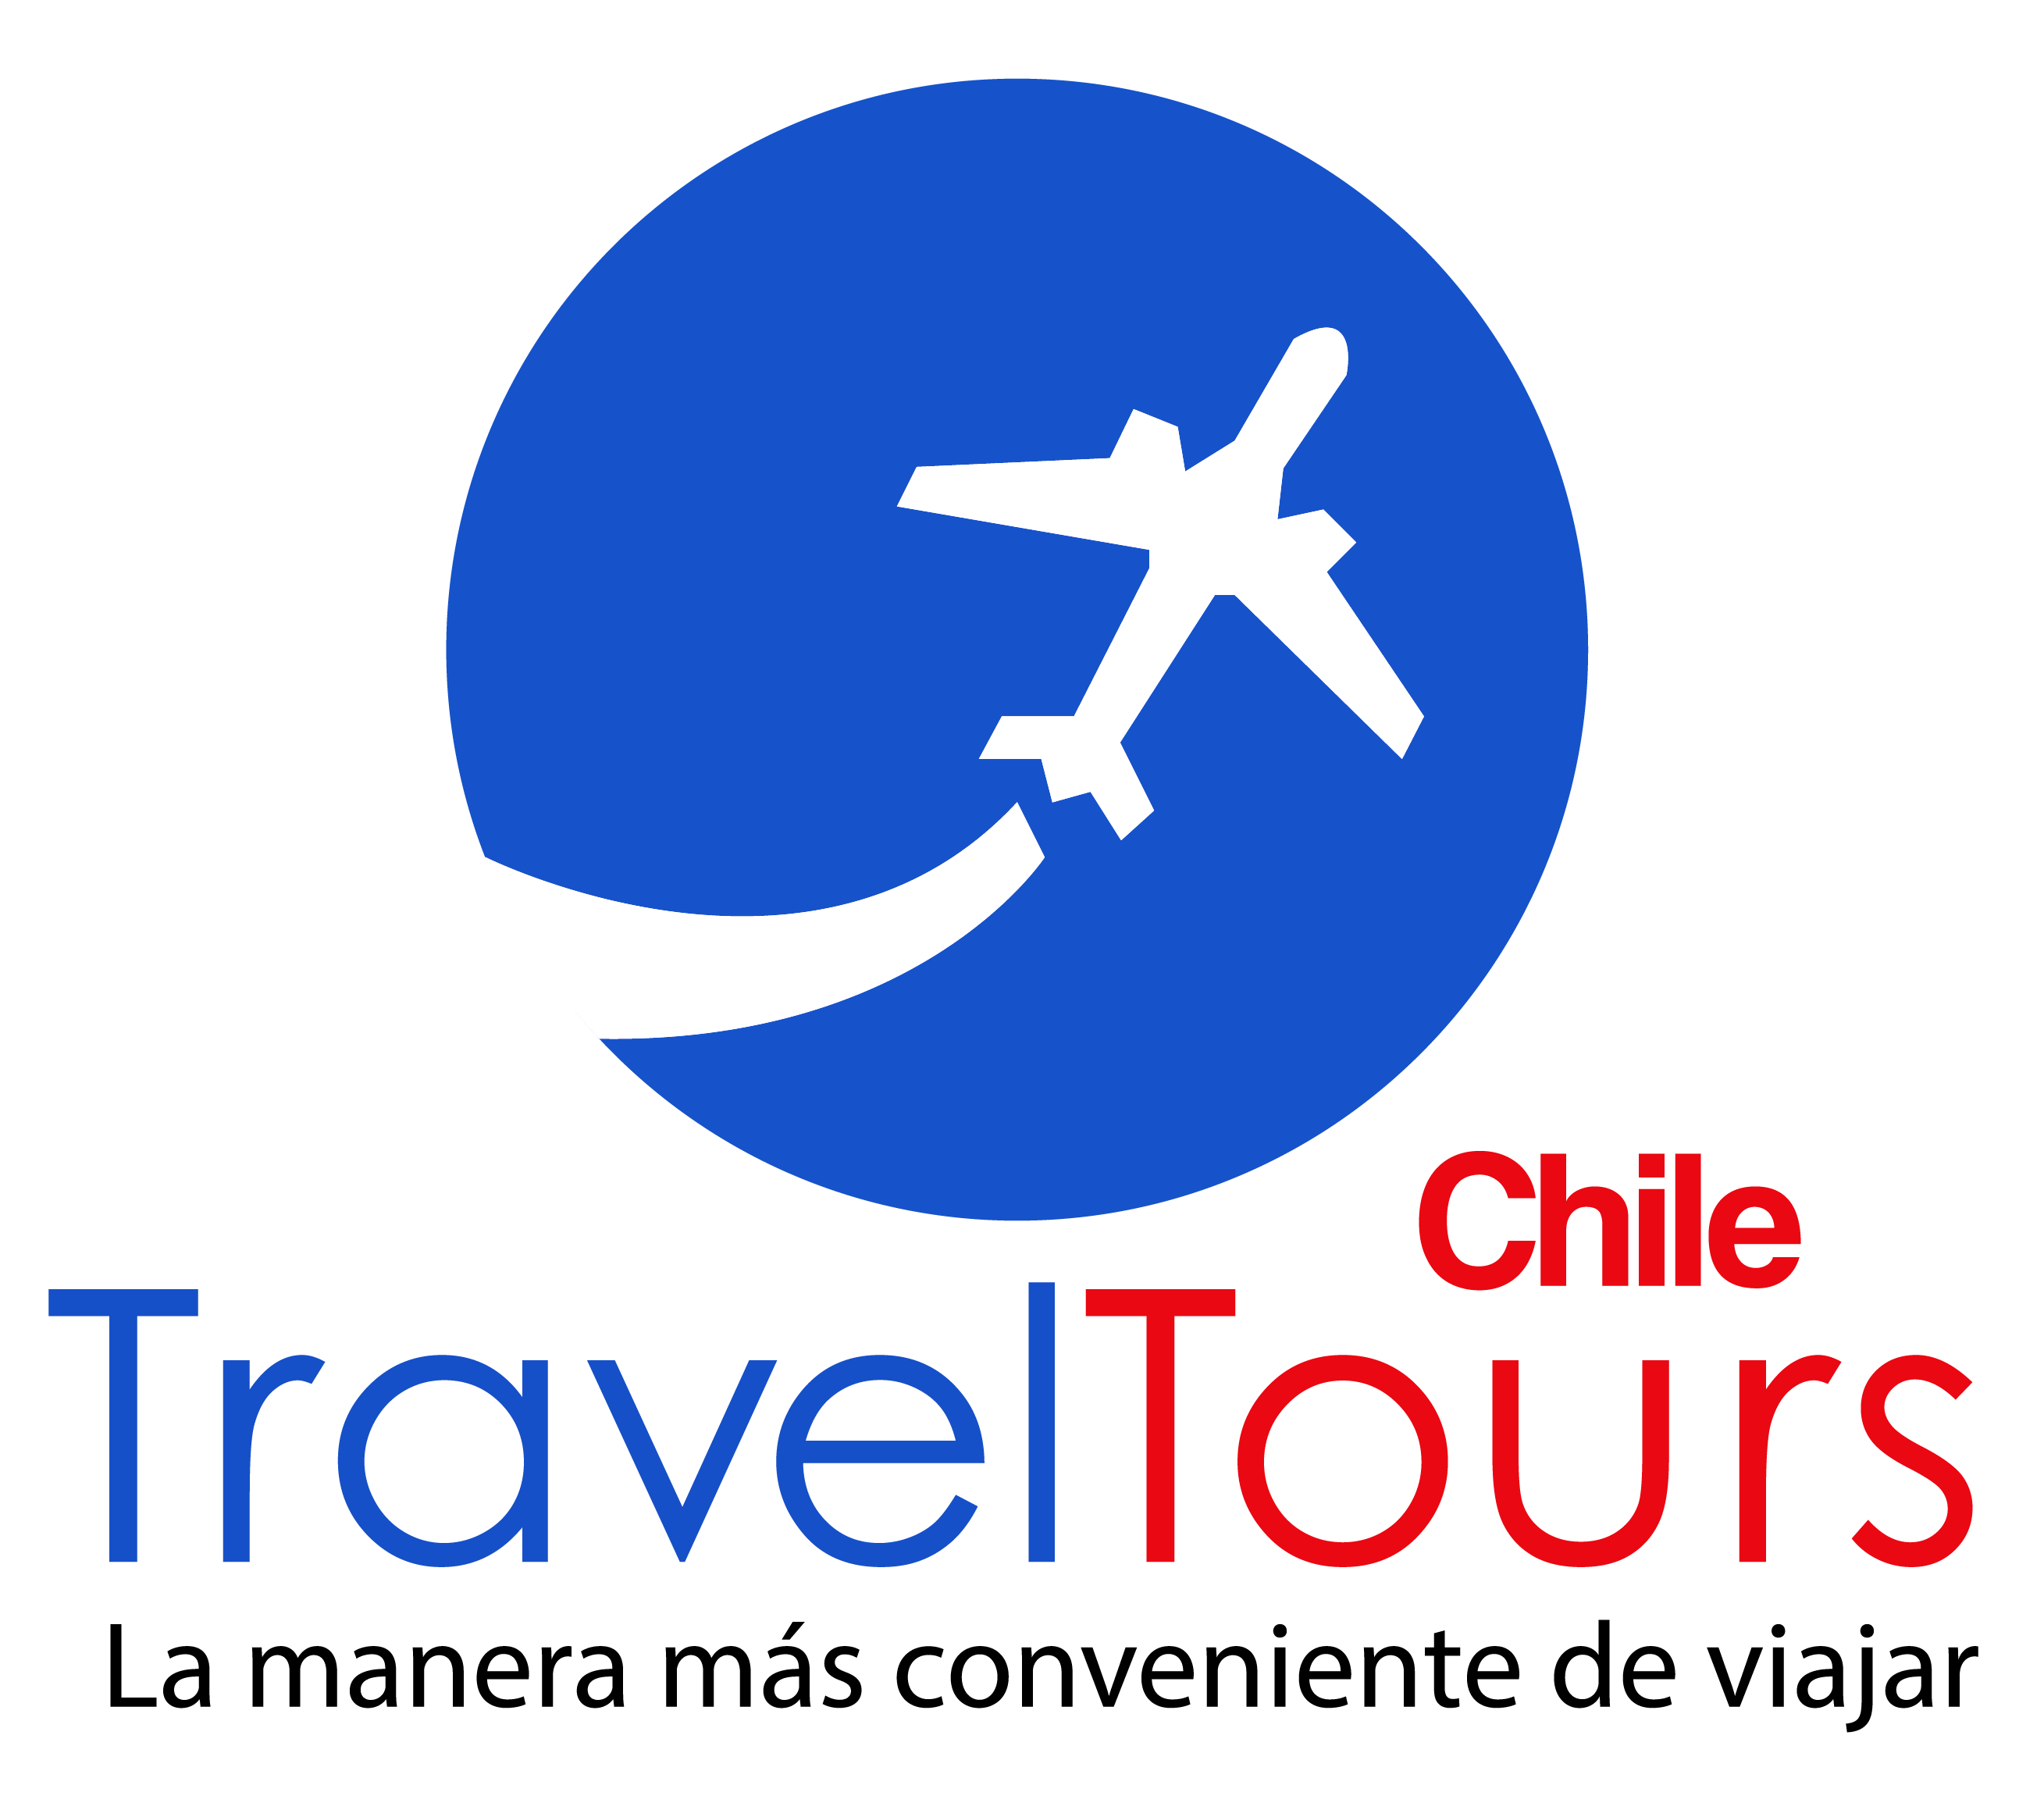 Travel Tours Chile